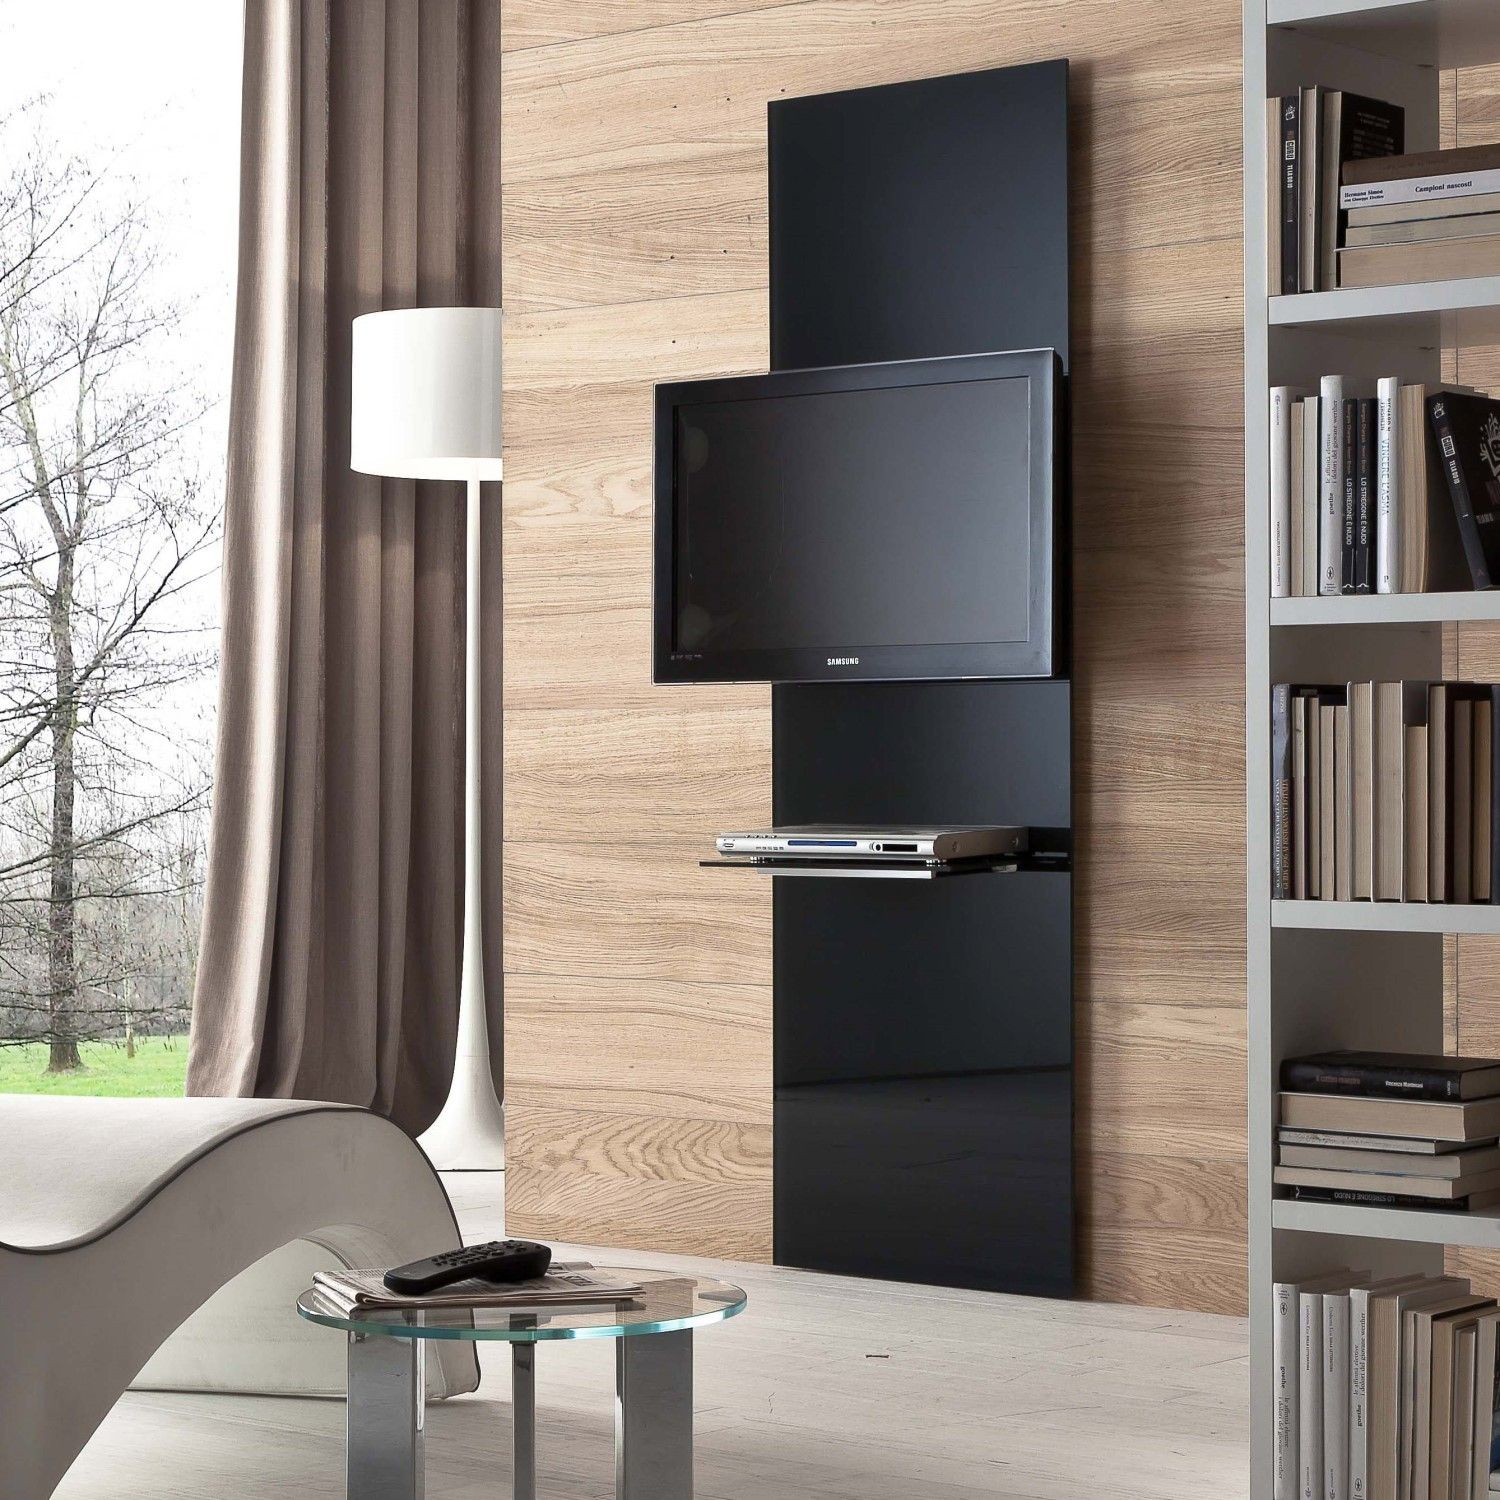 show tv m bel mit wandhalterung arredaclick design. Black Bedroom Furniture Sets. Home Design Ideas